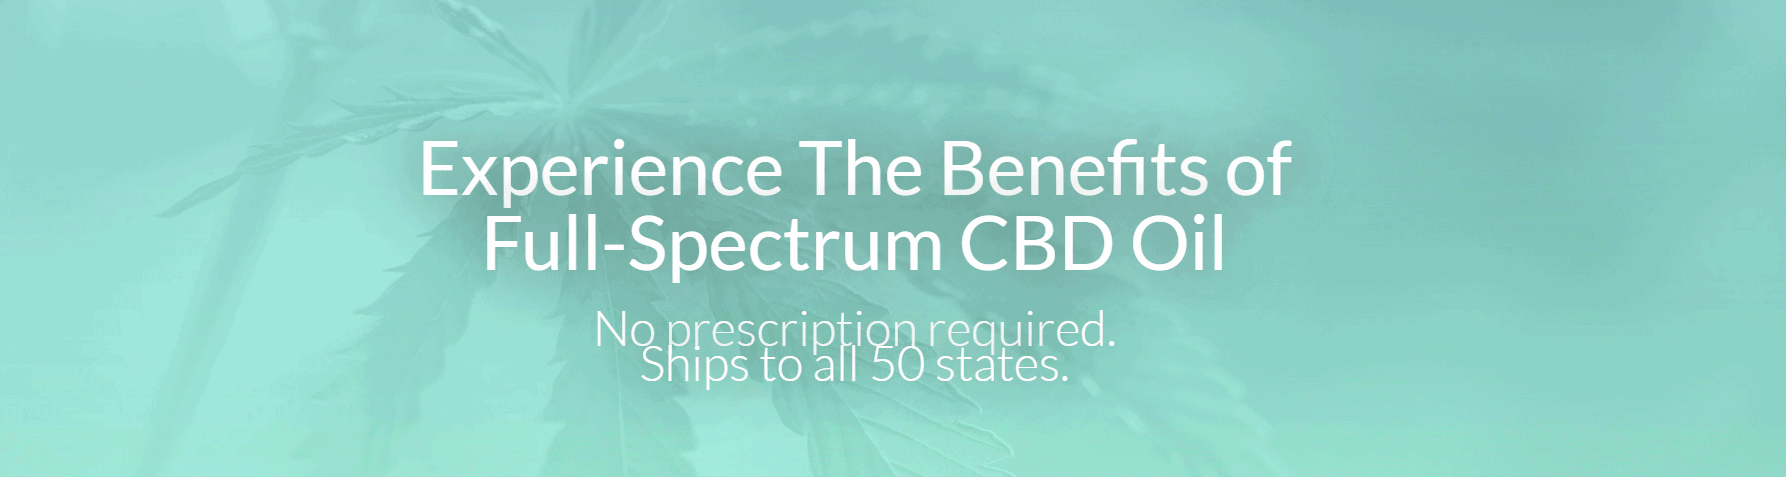 Miracle Seed CBD Coupons Full Spectrum